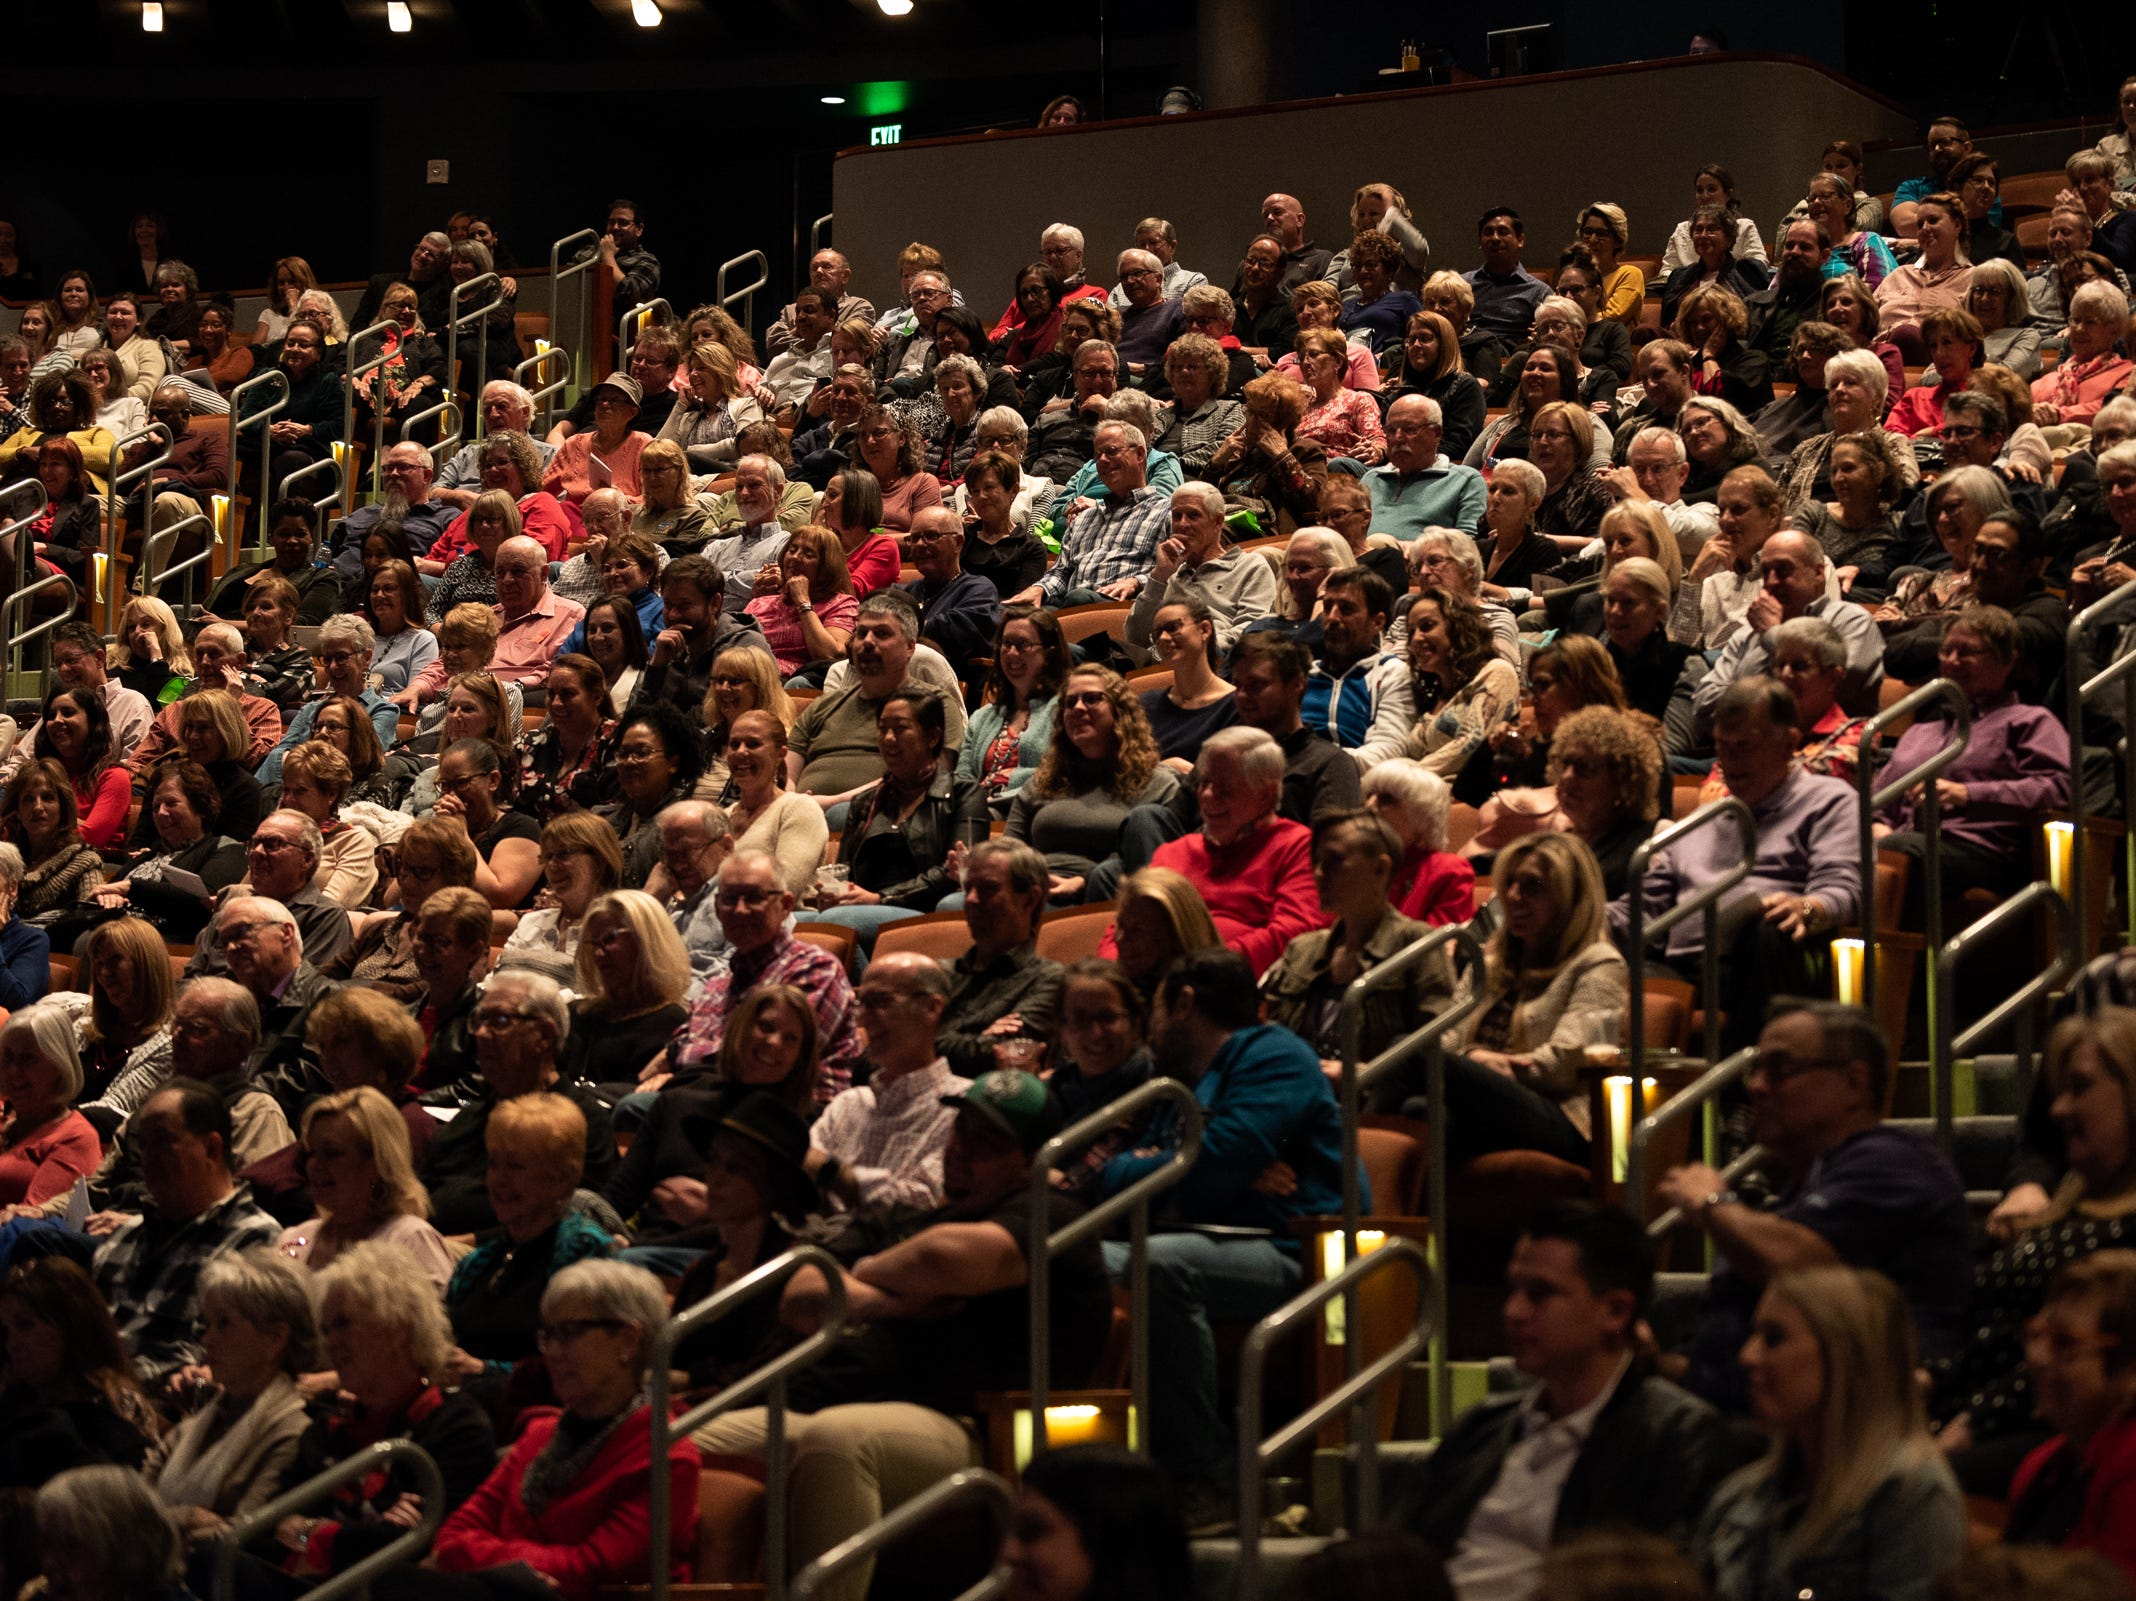 """The audience listens as storytellers share their tales during """"Arizona Storytellers: Romance or Not"""" at the Scottsdale Center for Performing Arts on Wednesday, Feb. 13, 2019."""